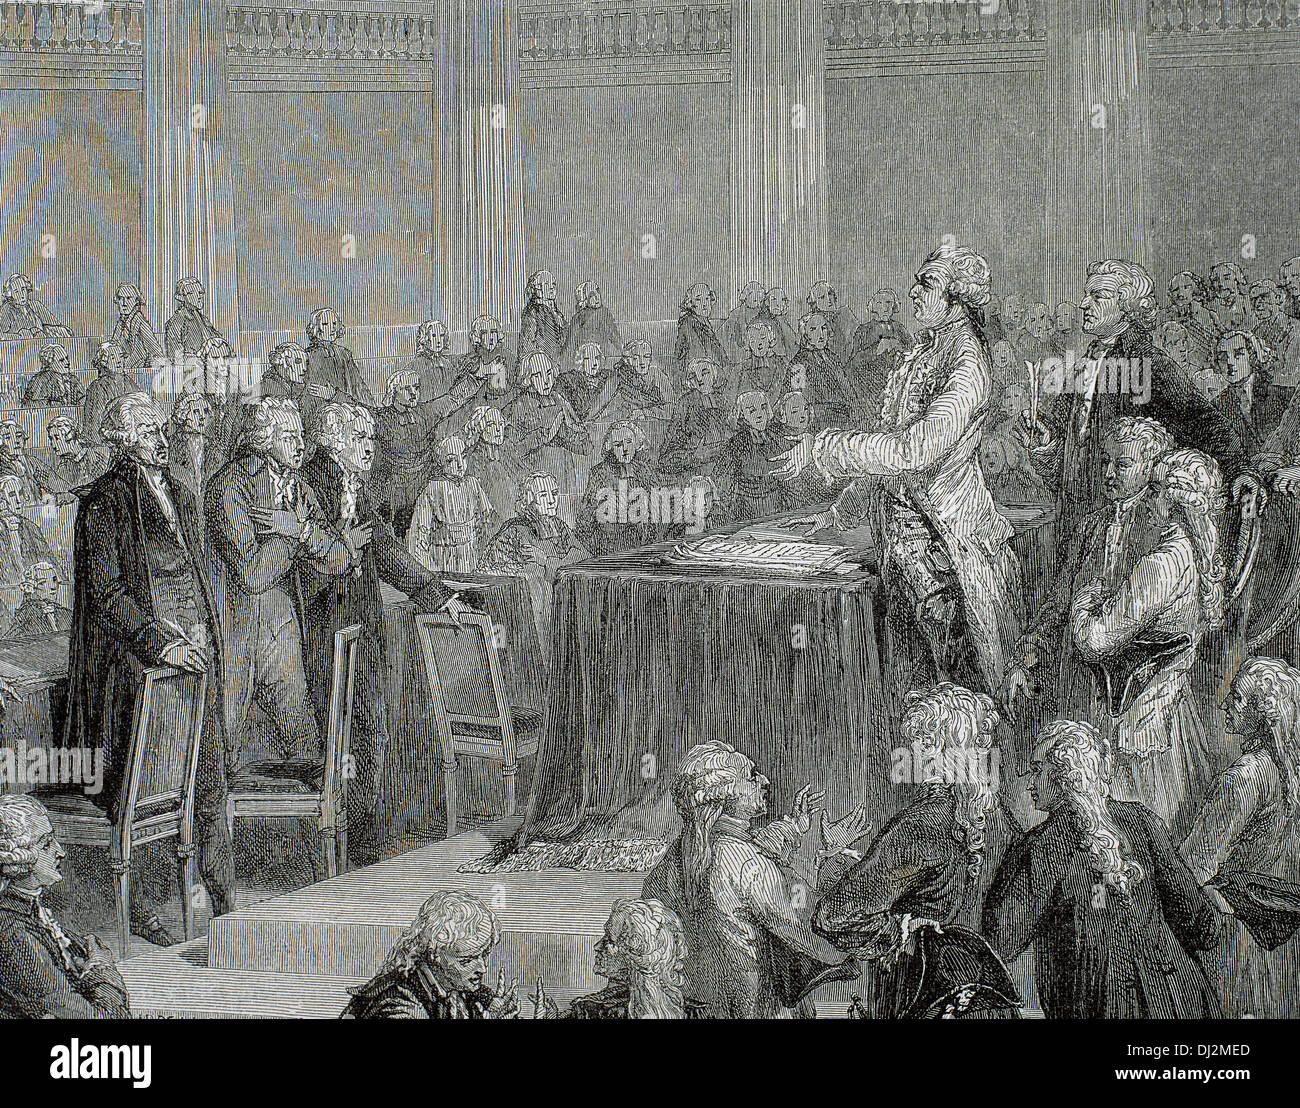 Frech Revolution 1787-1799. Louis XVI was forced to adopt the Constitution of 1791 by the National Assembly. Engraving. - Stock Image